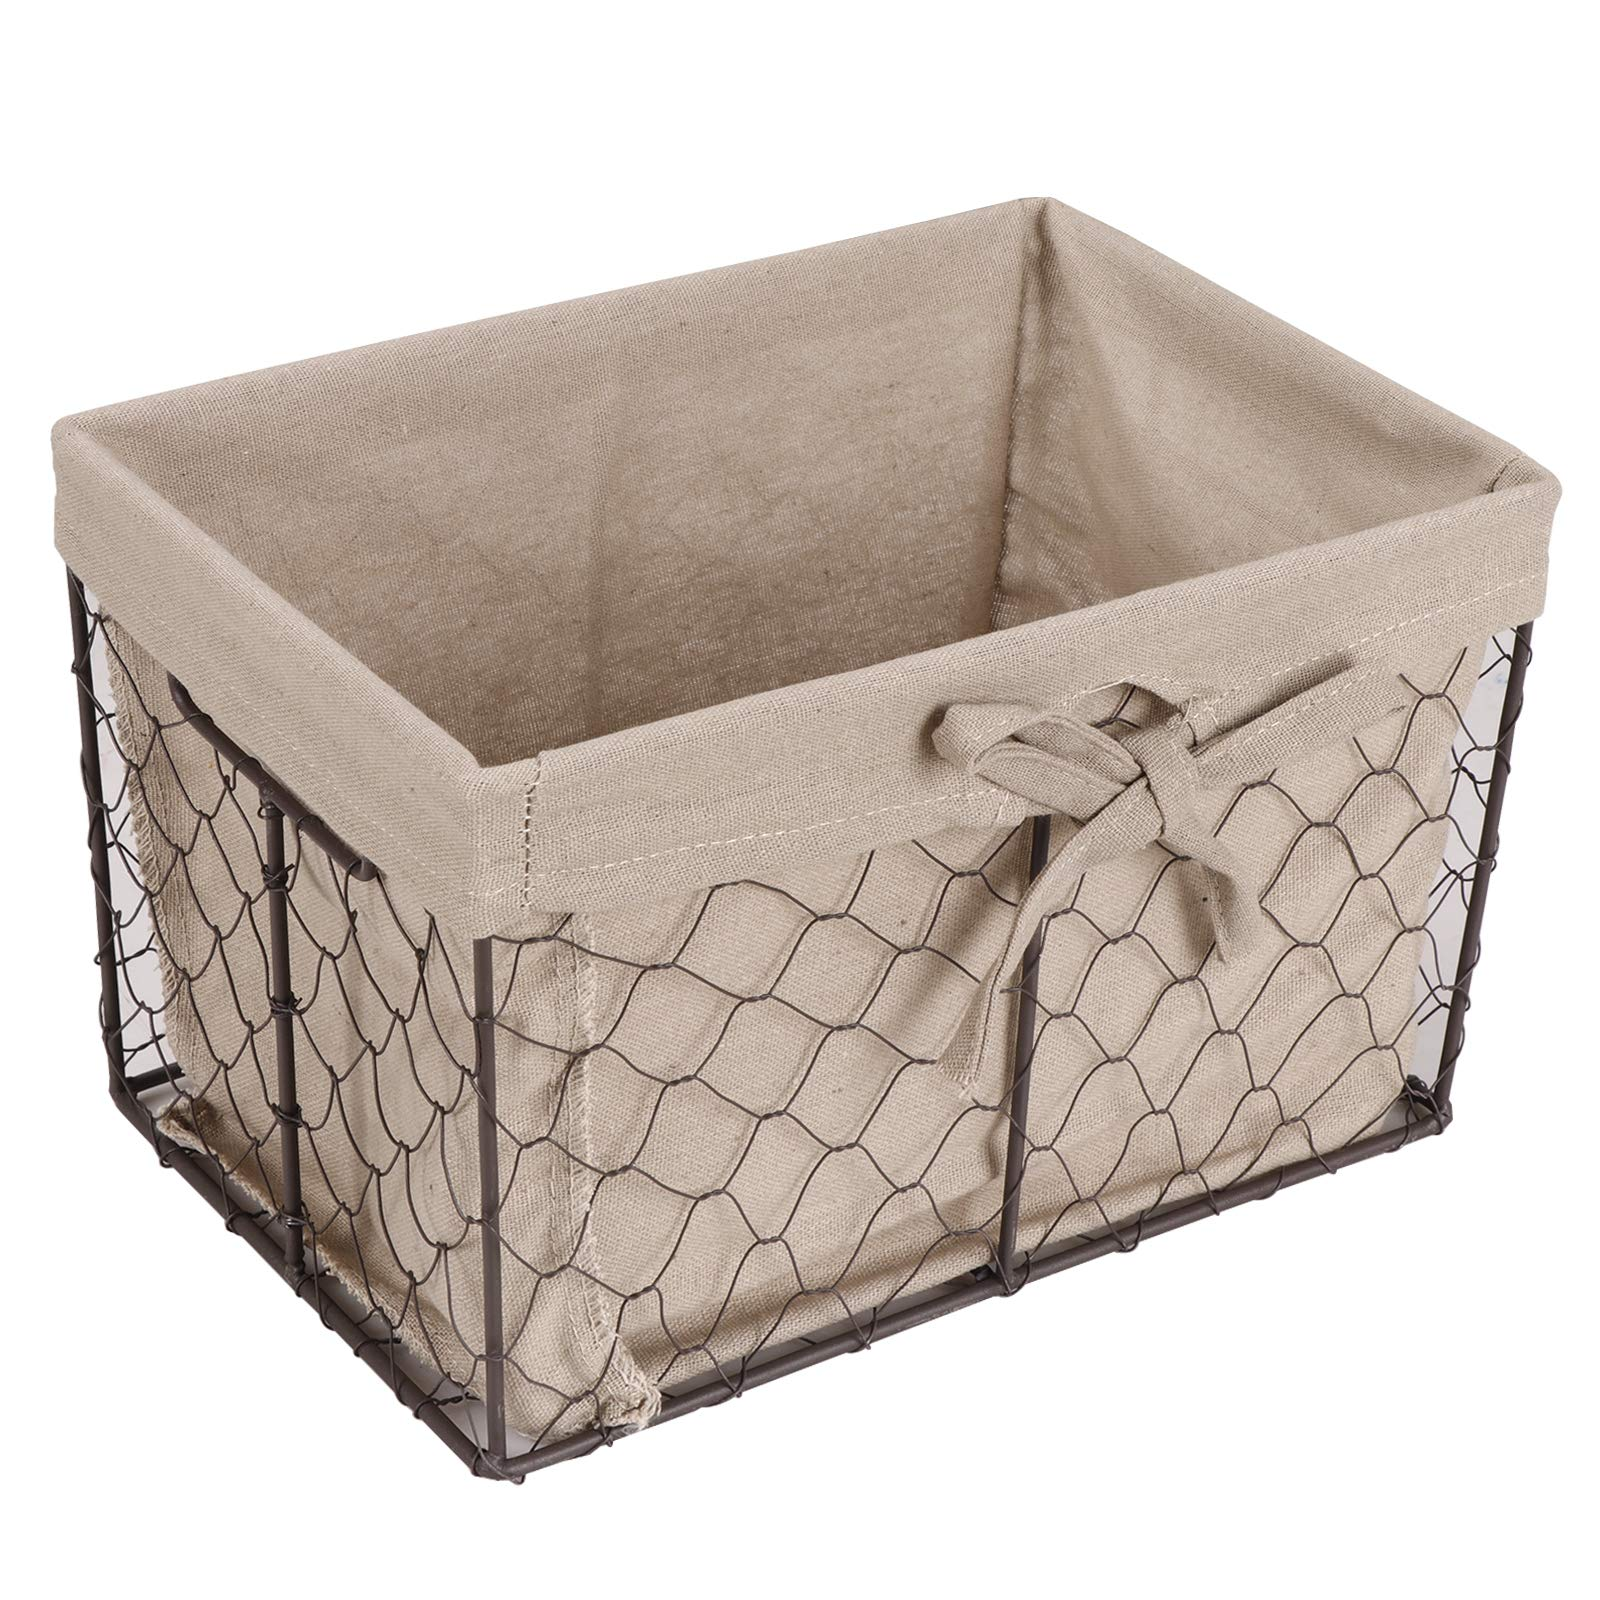 F2C Home Decor Set of 5 Vintage Toy Fruit Clothes Metal Chicken Wire Storage Basket Organizer W/Removable Fabric Liner for Bathroom Kitchen Office Nursery Laundry Bedroom Shelf by F2C (Image #5)